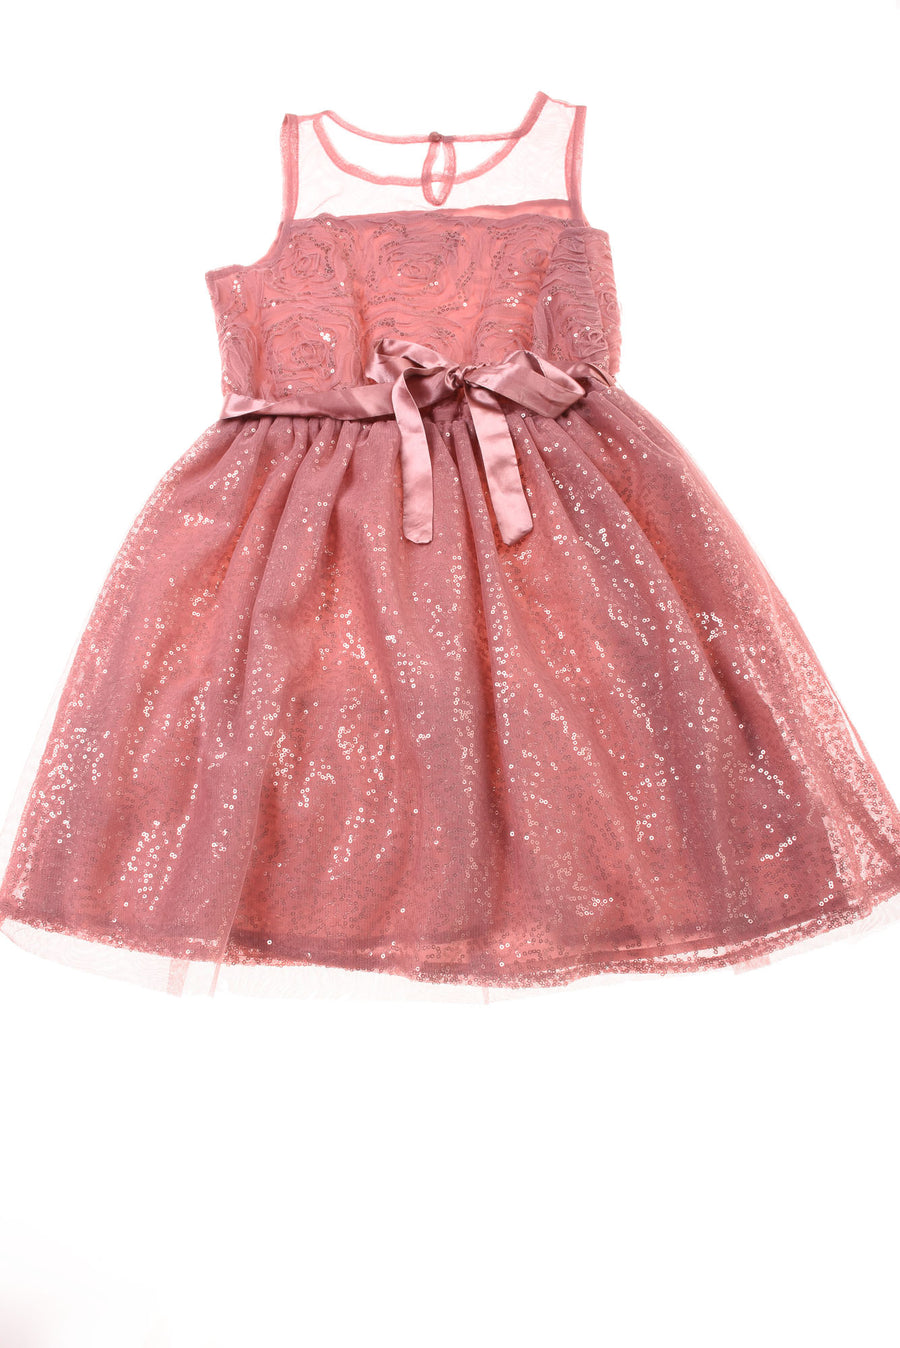 USED Justice Girl's Dress 12 Pink